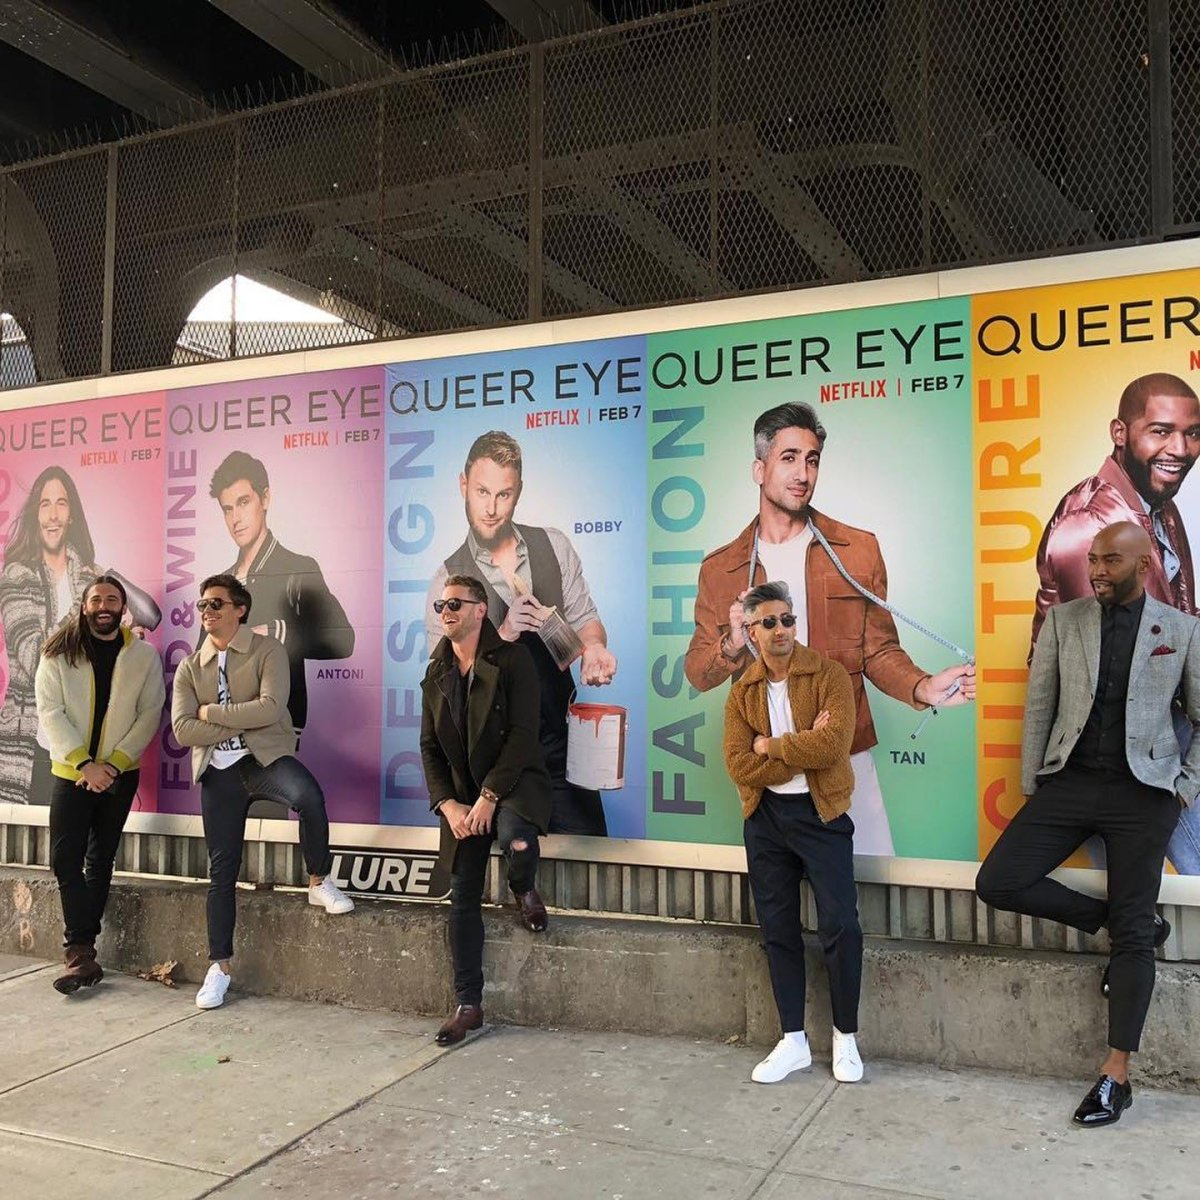 Queer Eye — A bagunça emocional do homem se revela no exterior